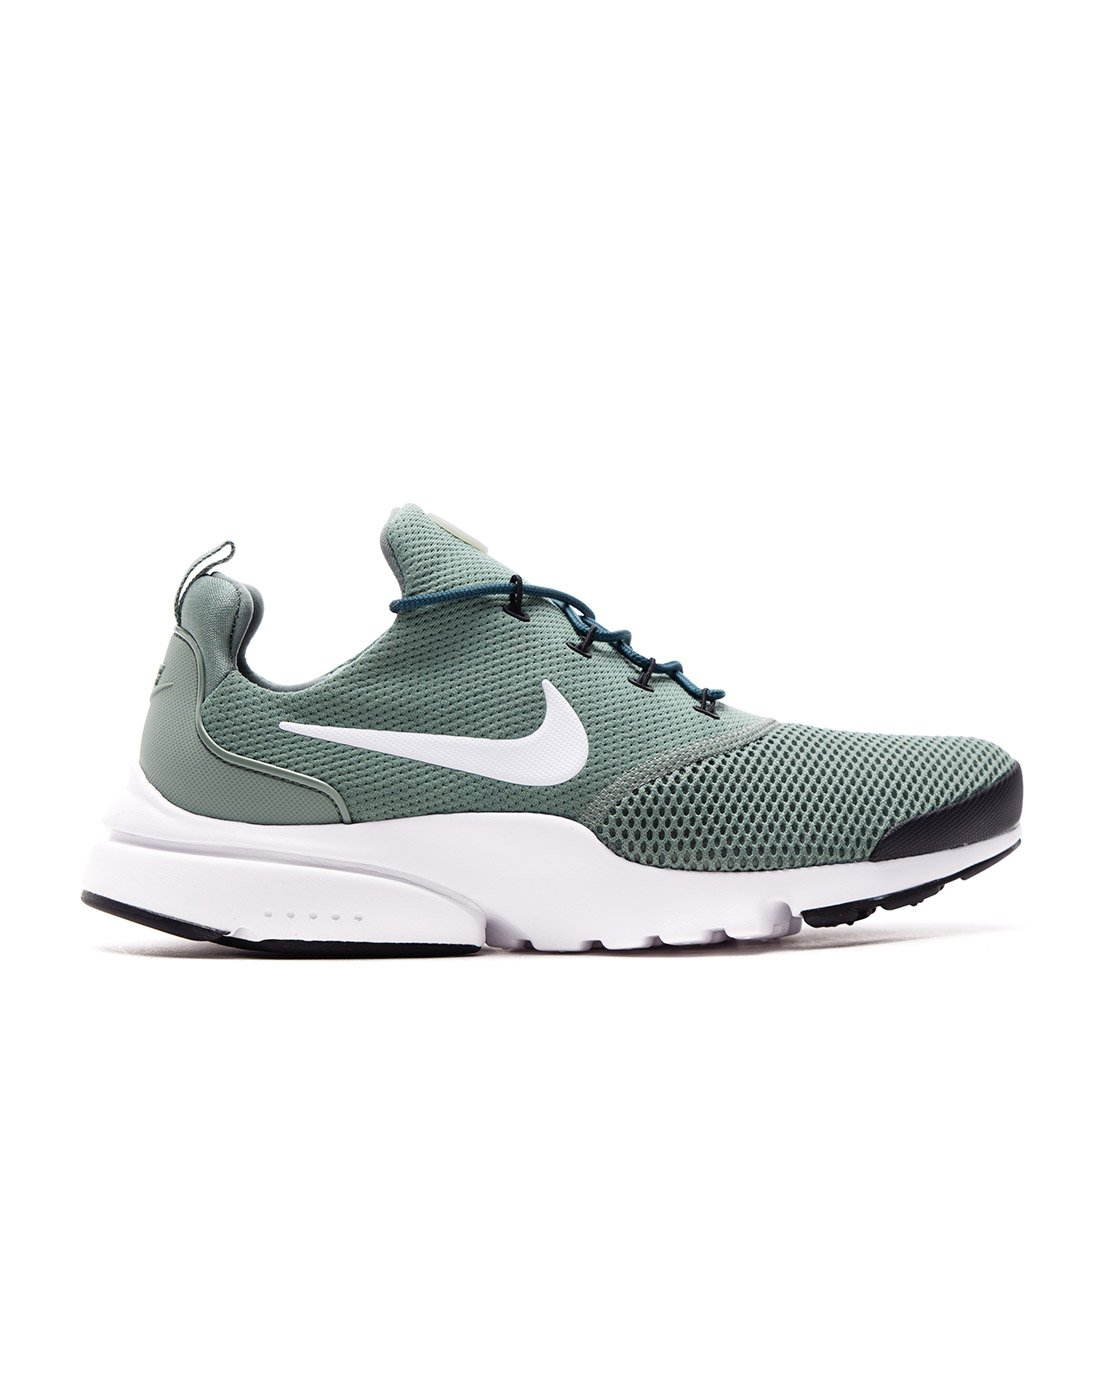 detailed look 013e1 1d5fe Galleon - NIKE Presto Fly Mens Running Trainers 908019 Sneakers Shoes (UK  6.5 US 7.5 EU 40.5, Clay Green White Black 303)